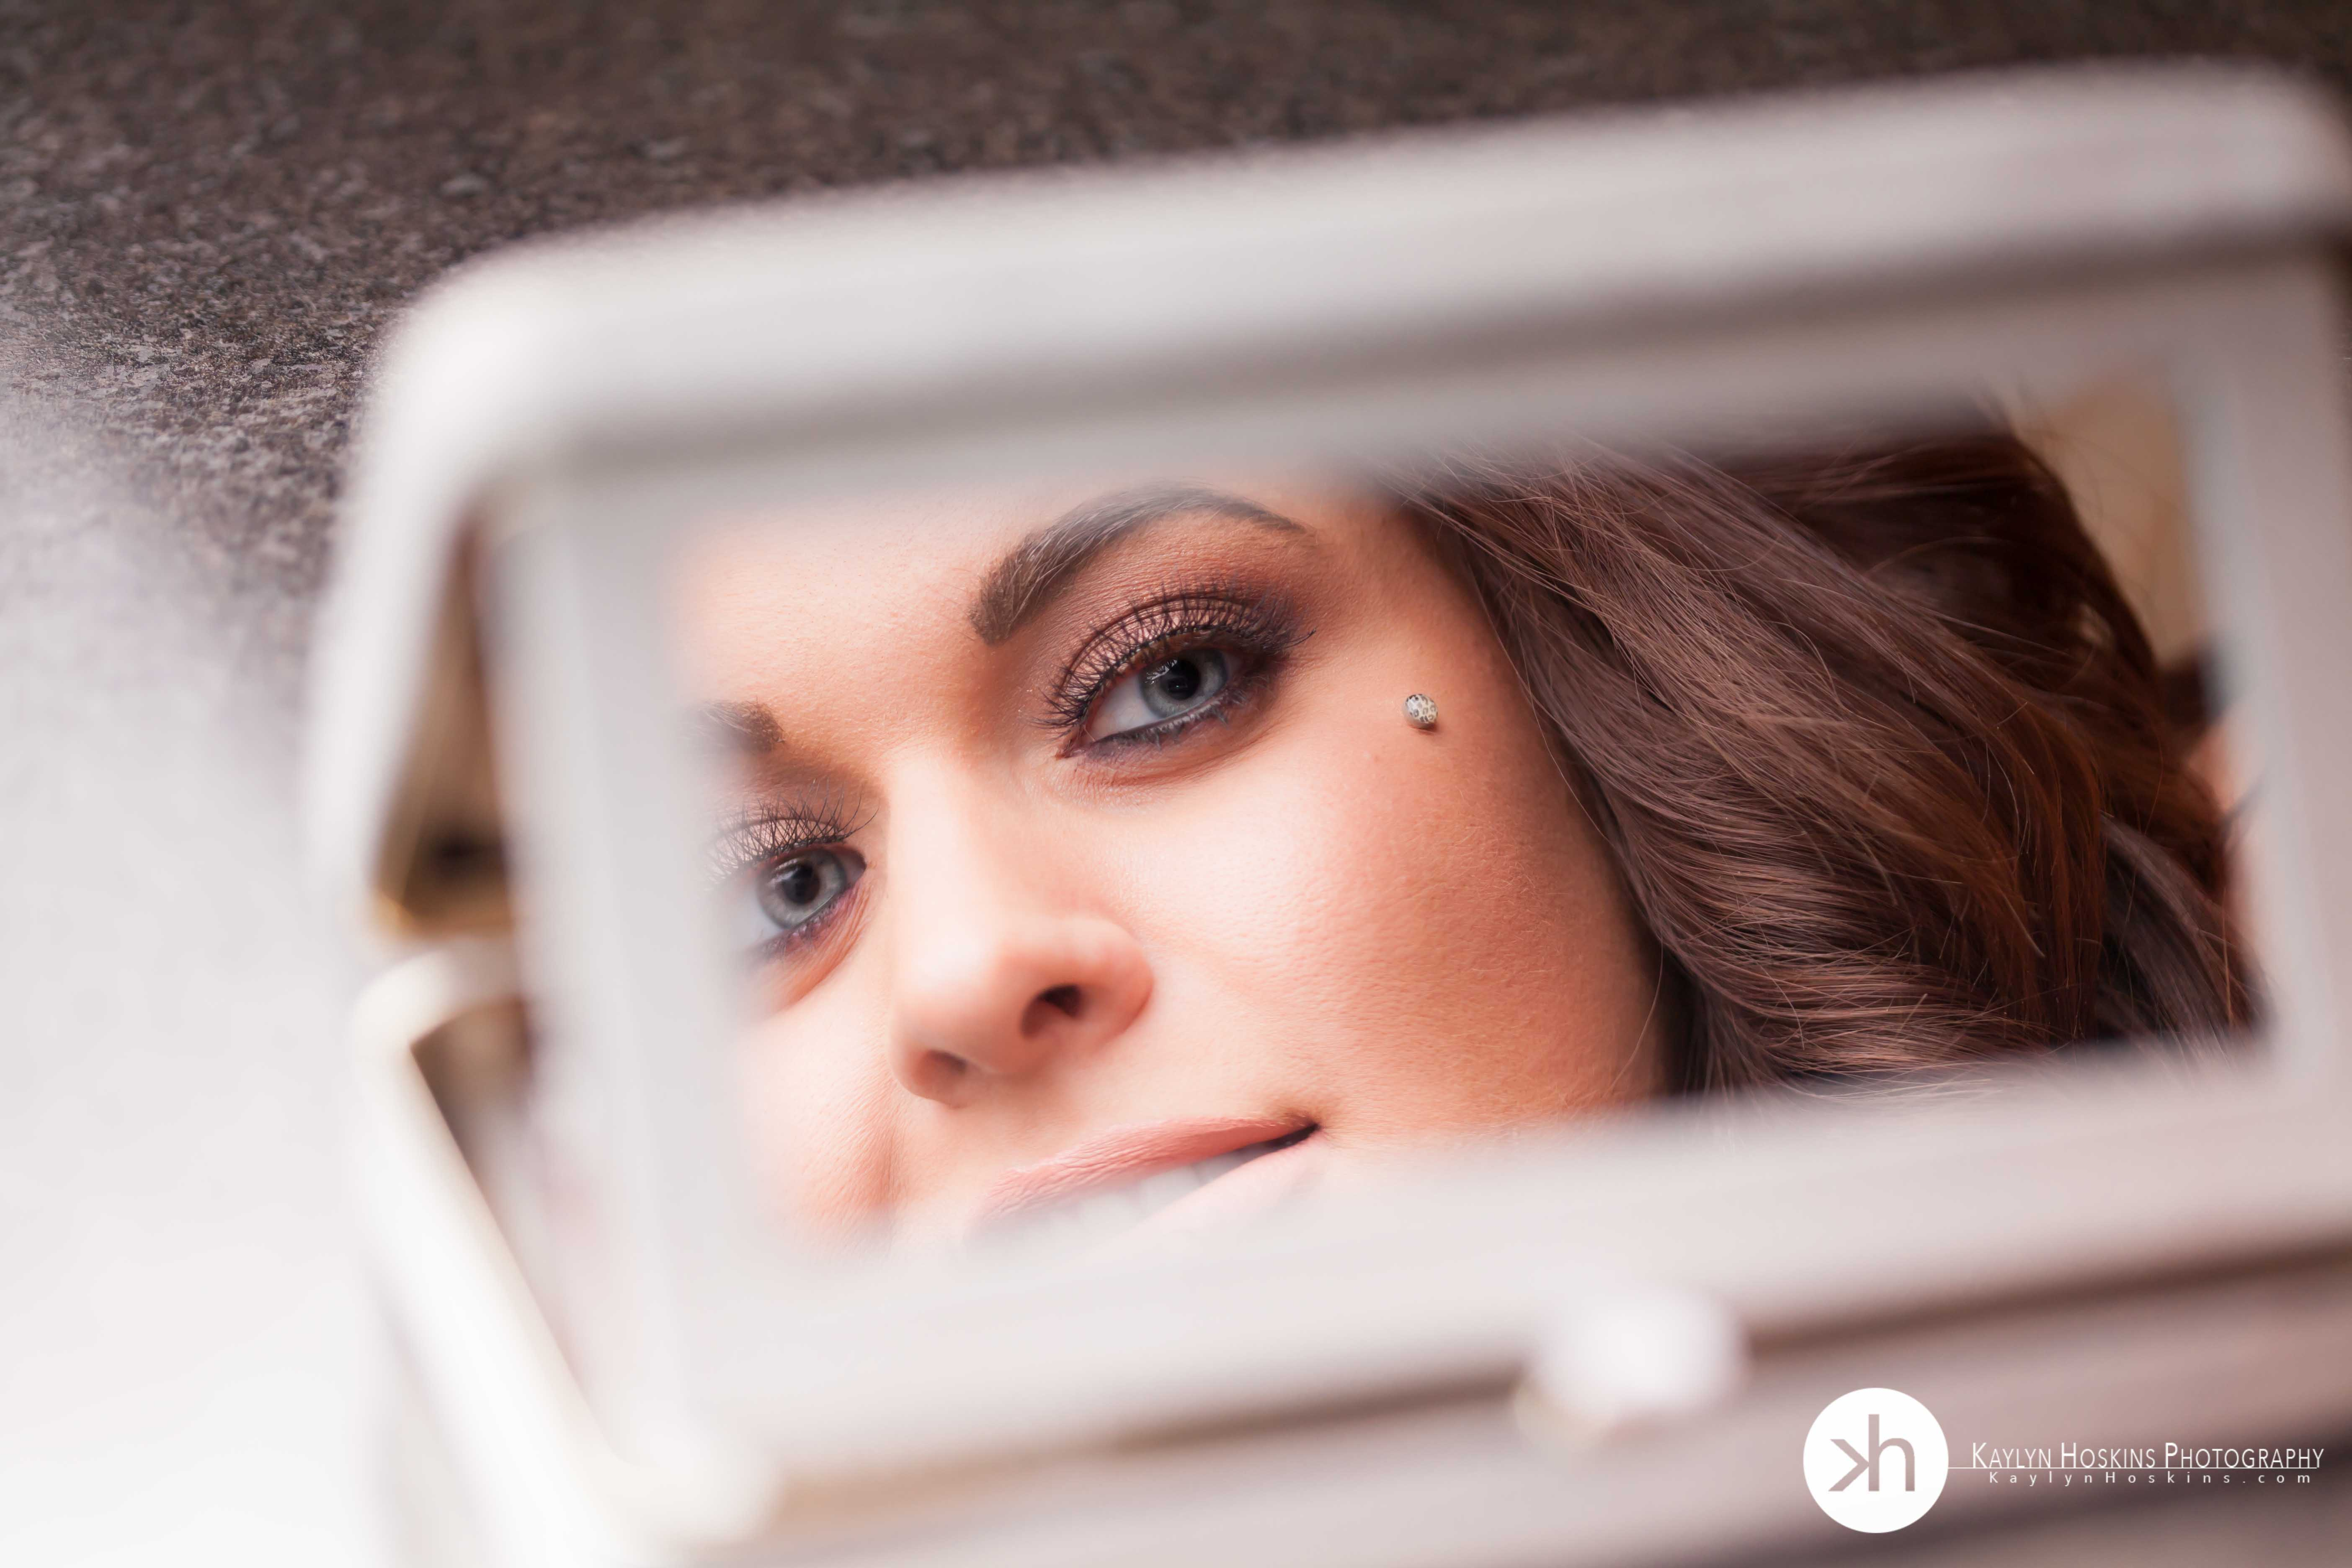 Makeup Artist looks into mirror during boudoir experience